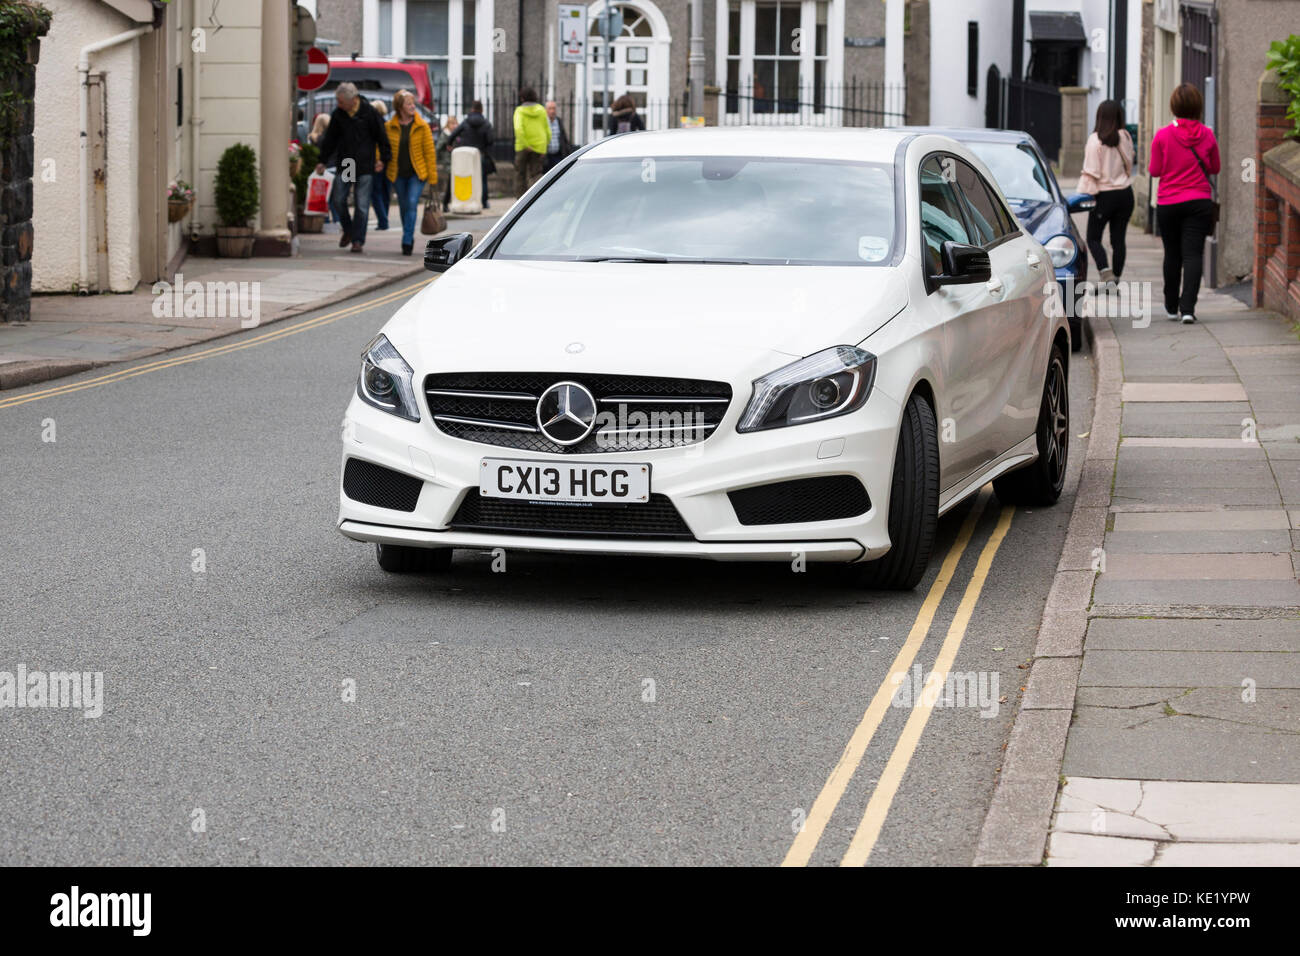 badly parked car on double yellow lines - Stock Image